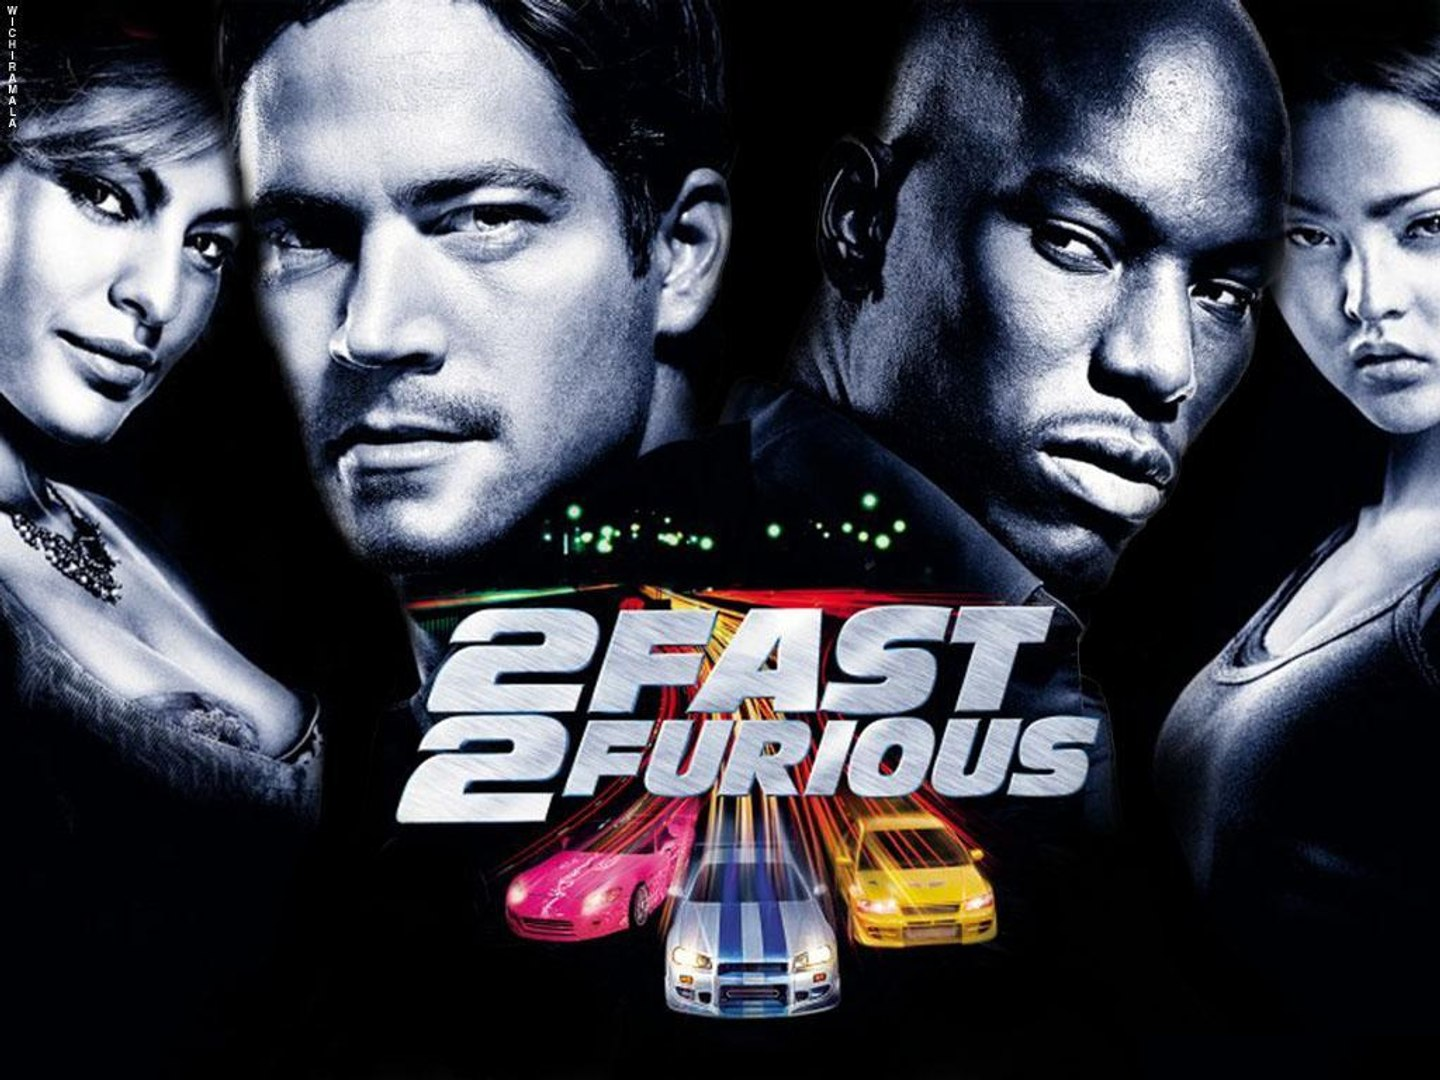 Watch 2 Fast 2 Furious online free